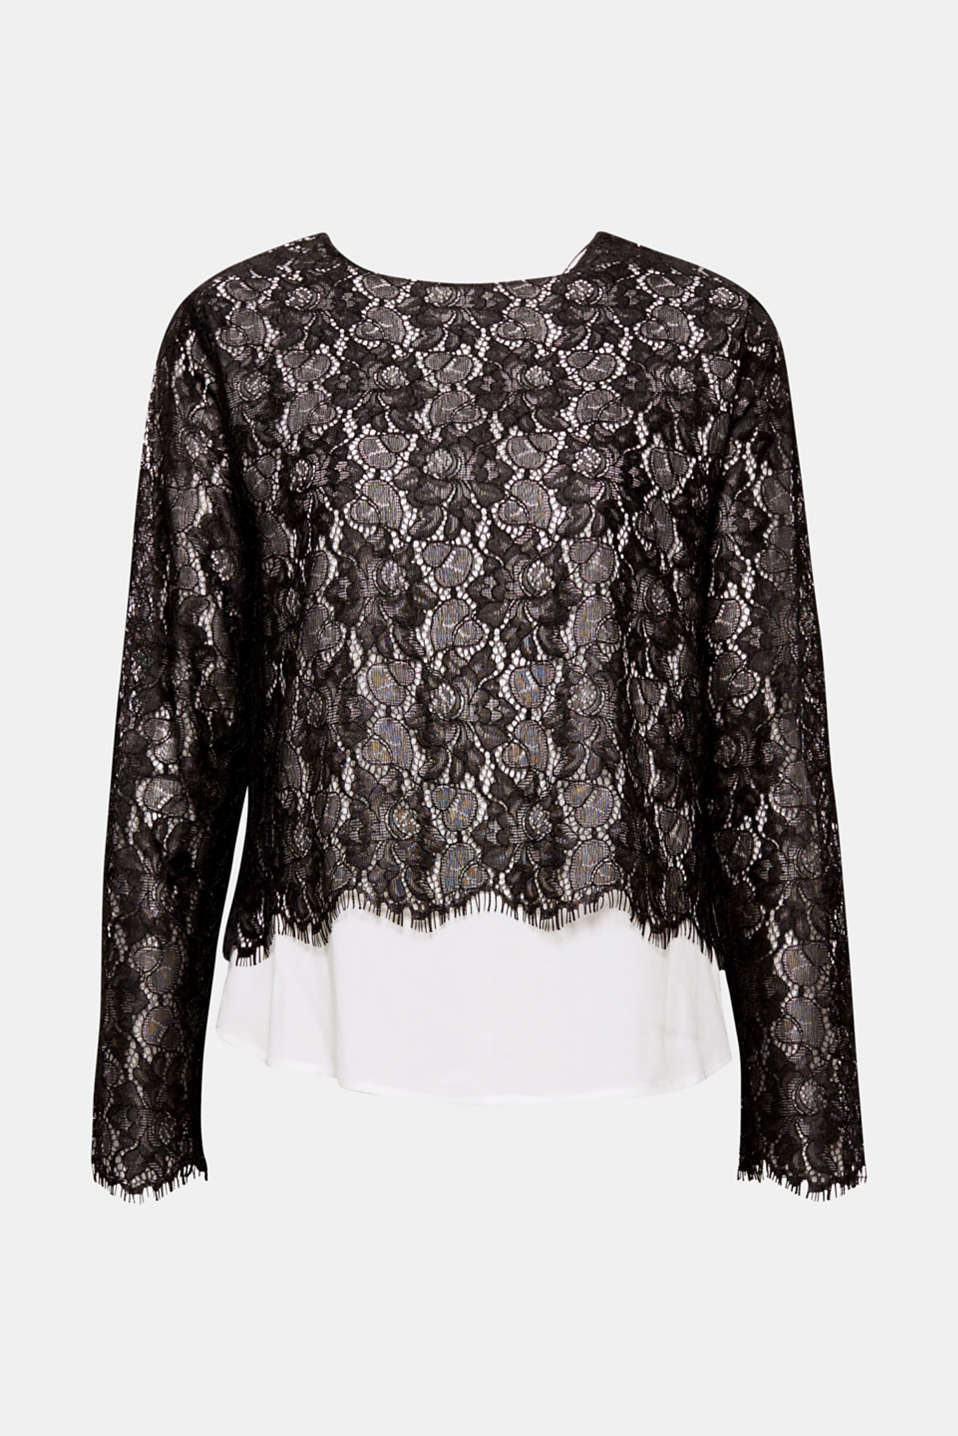 Opaque and sheer, pale and dark - this feminine long sleeve lace top is full of exciting contrasts!